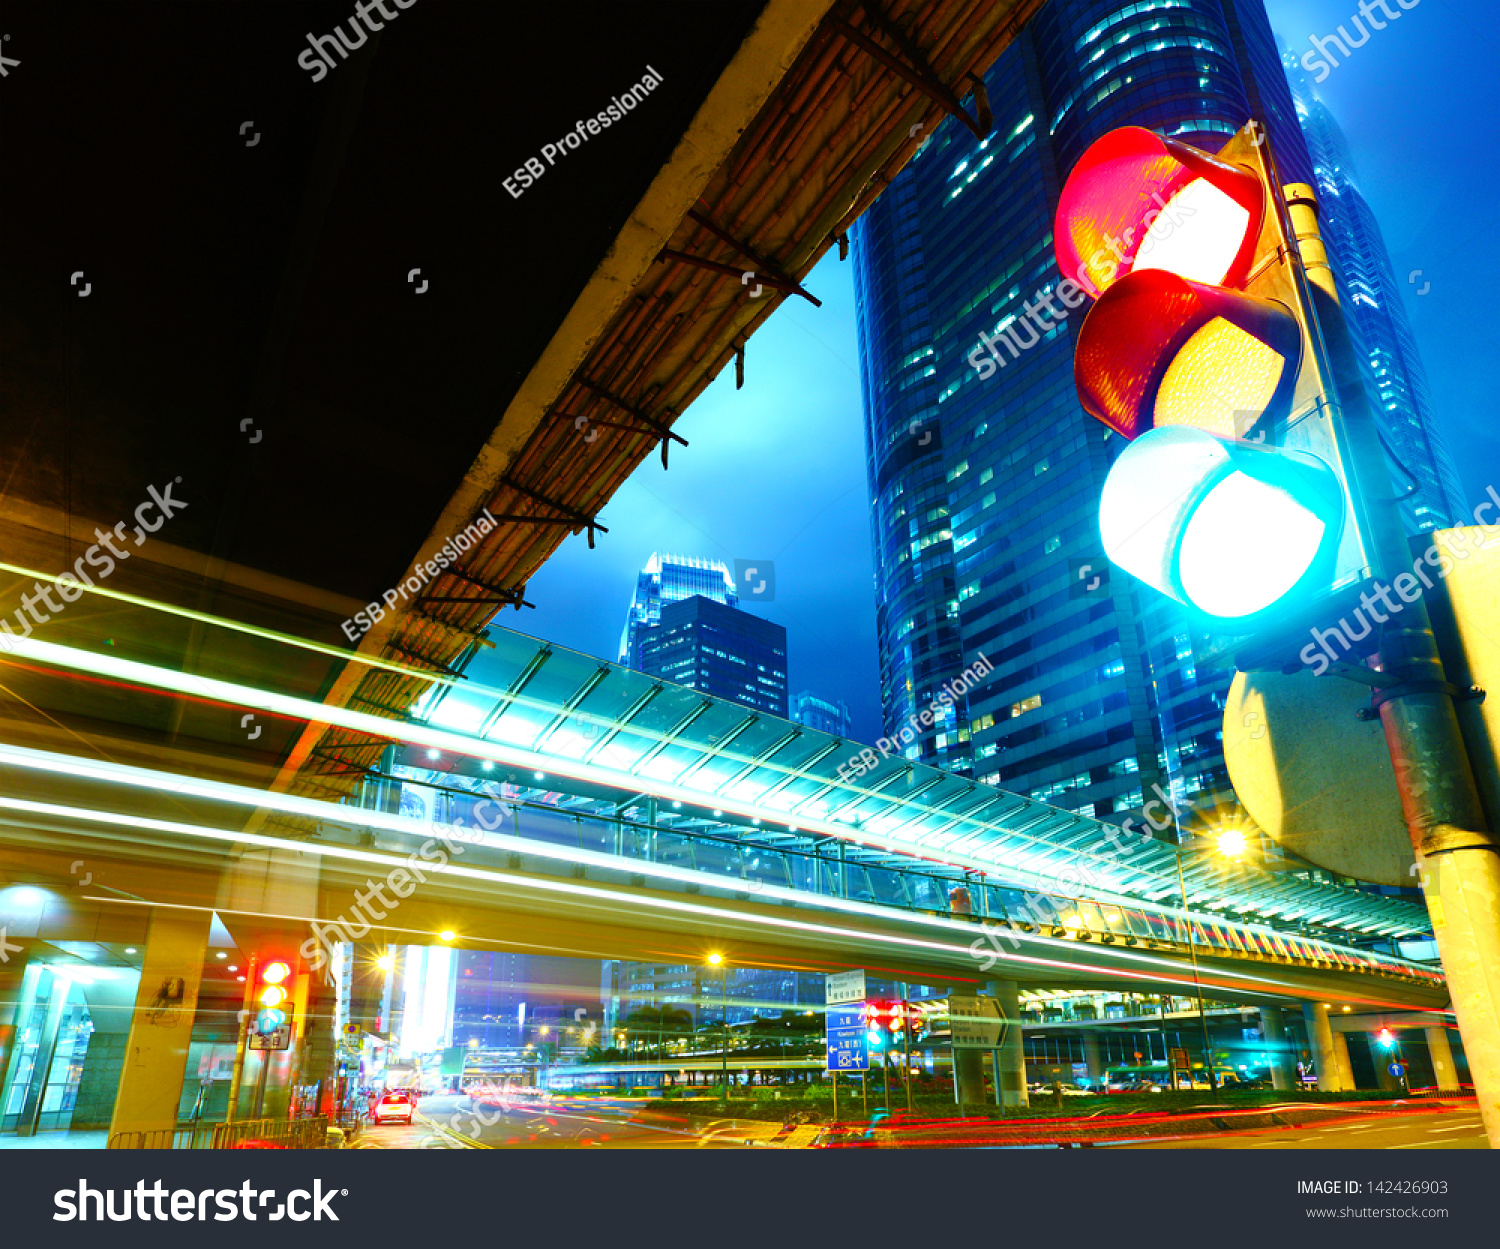 Traffic light in the city #142426903